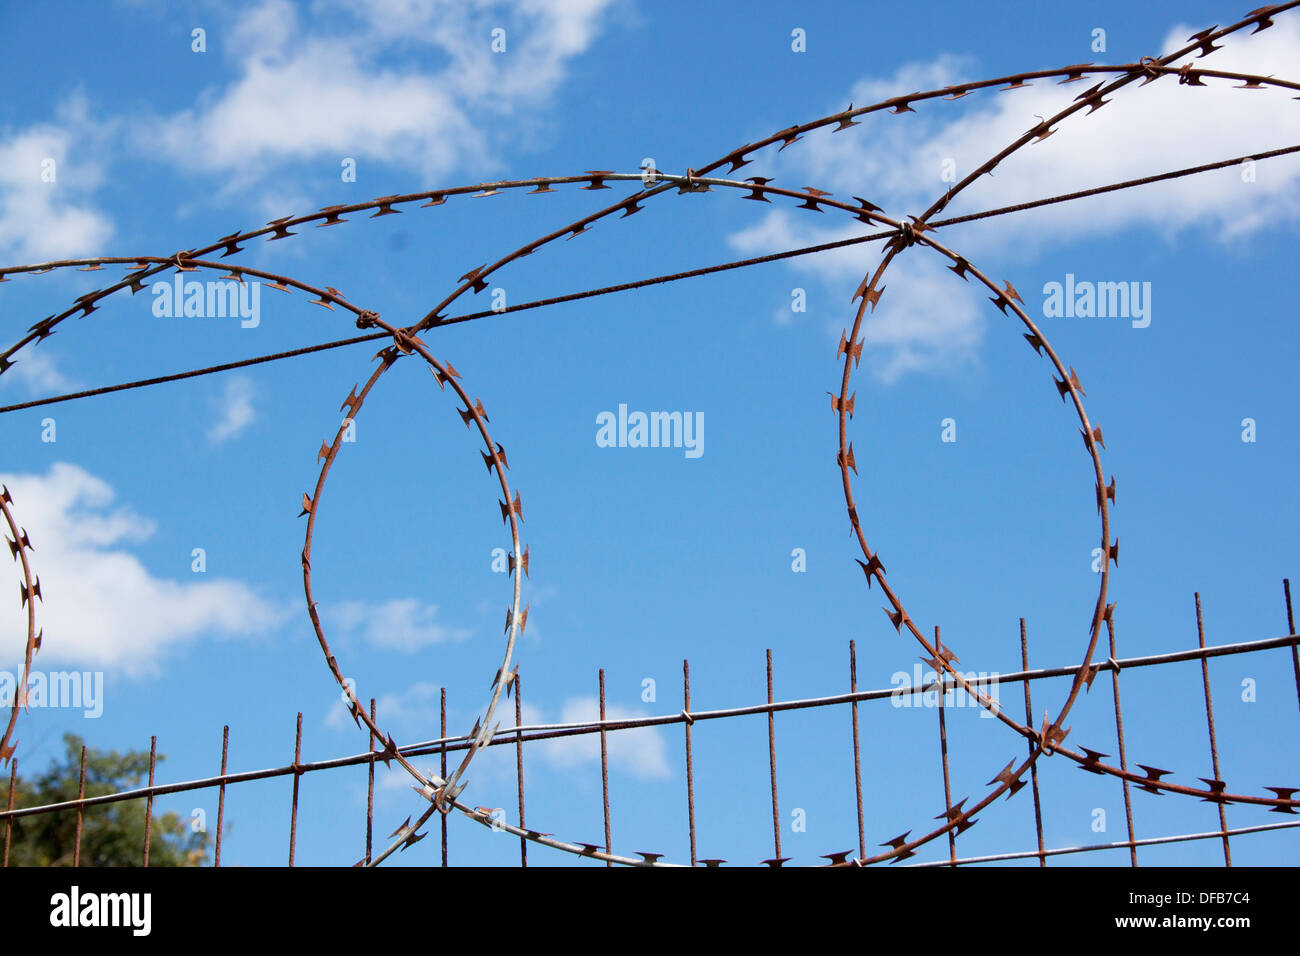 Coiled razor sharp barbed wire on fence against blue sky Stock Photo